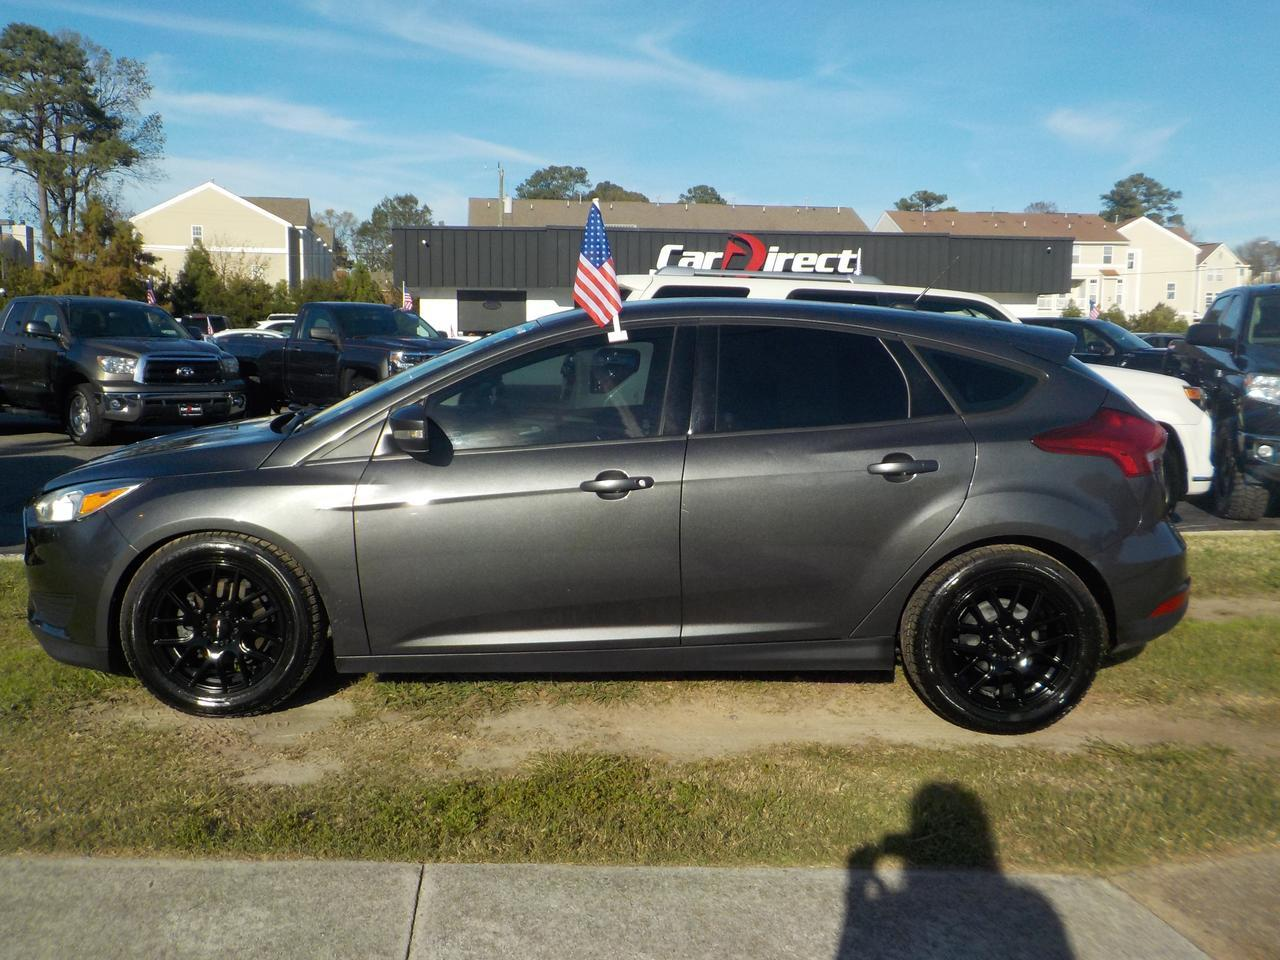 2016 FORD FOCUS SE HATCHBACK 4 DOOR, CUSTOM VISION RIMS, BACKUP CAMERA, STEERING WHEEL CONTROLS, GREAT CONDITION! Virginia Beach VA